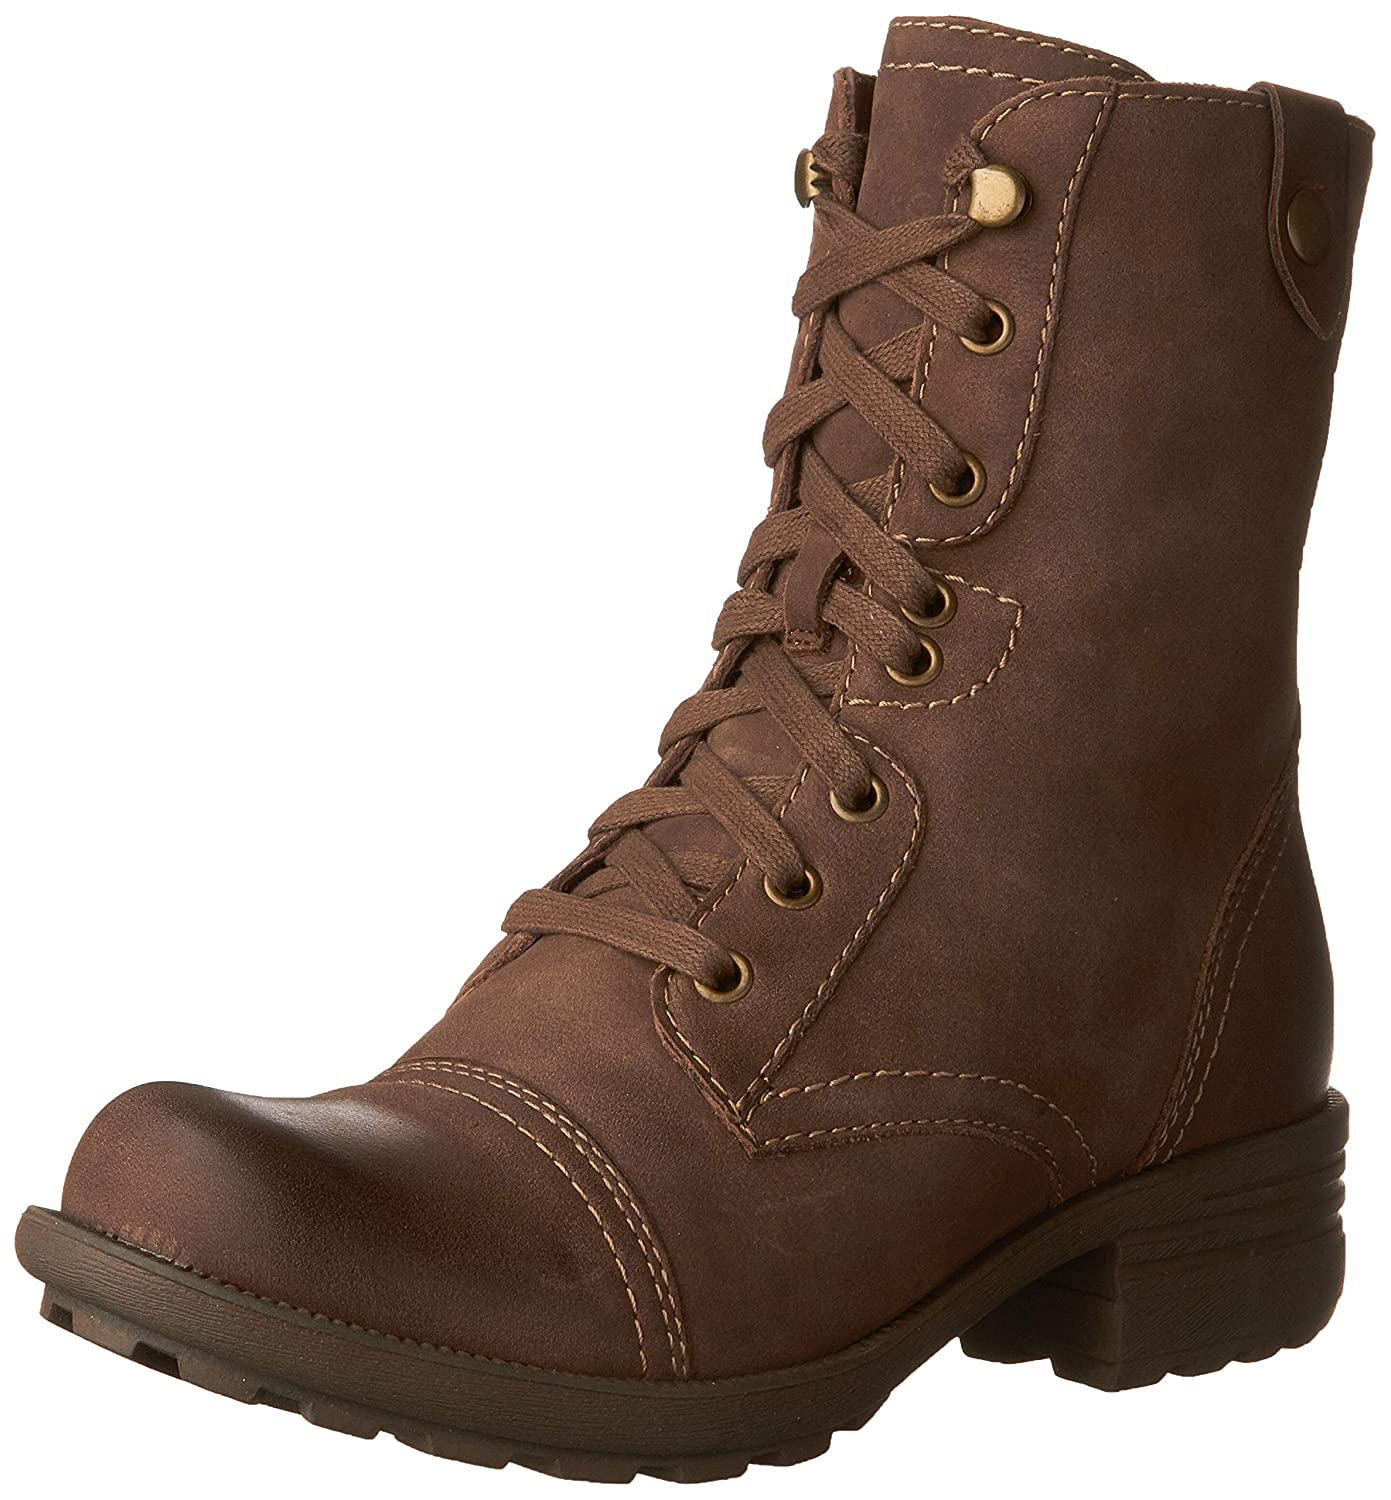 Stone Cobb Hill Rockport Women's Bethany Boot